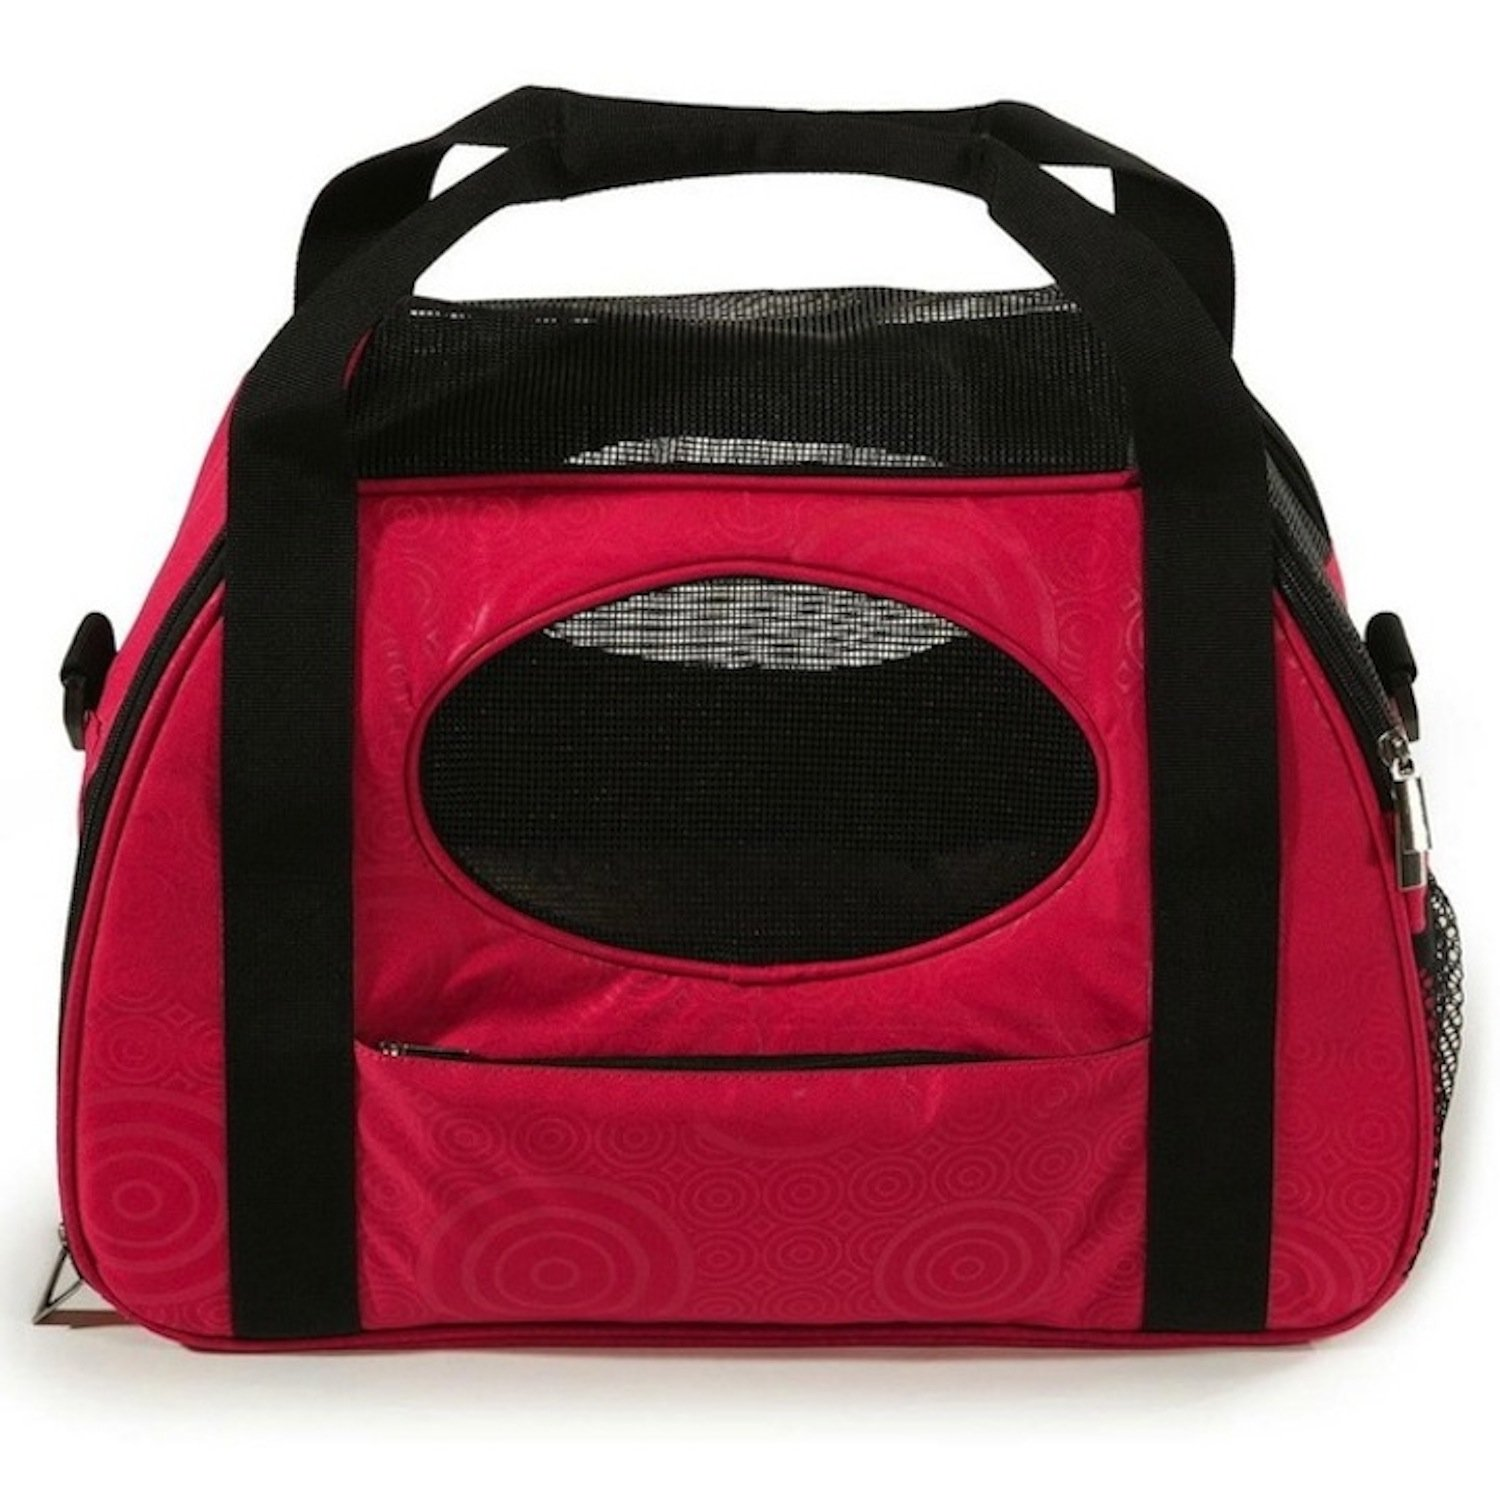 Gen7Pets Carry-Me Fashion Pet Carrier, Medium, Raspberry Sorbet